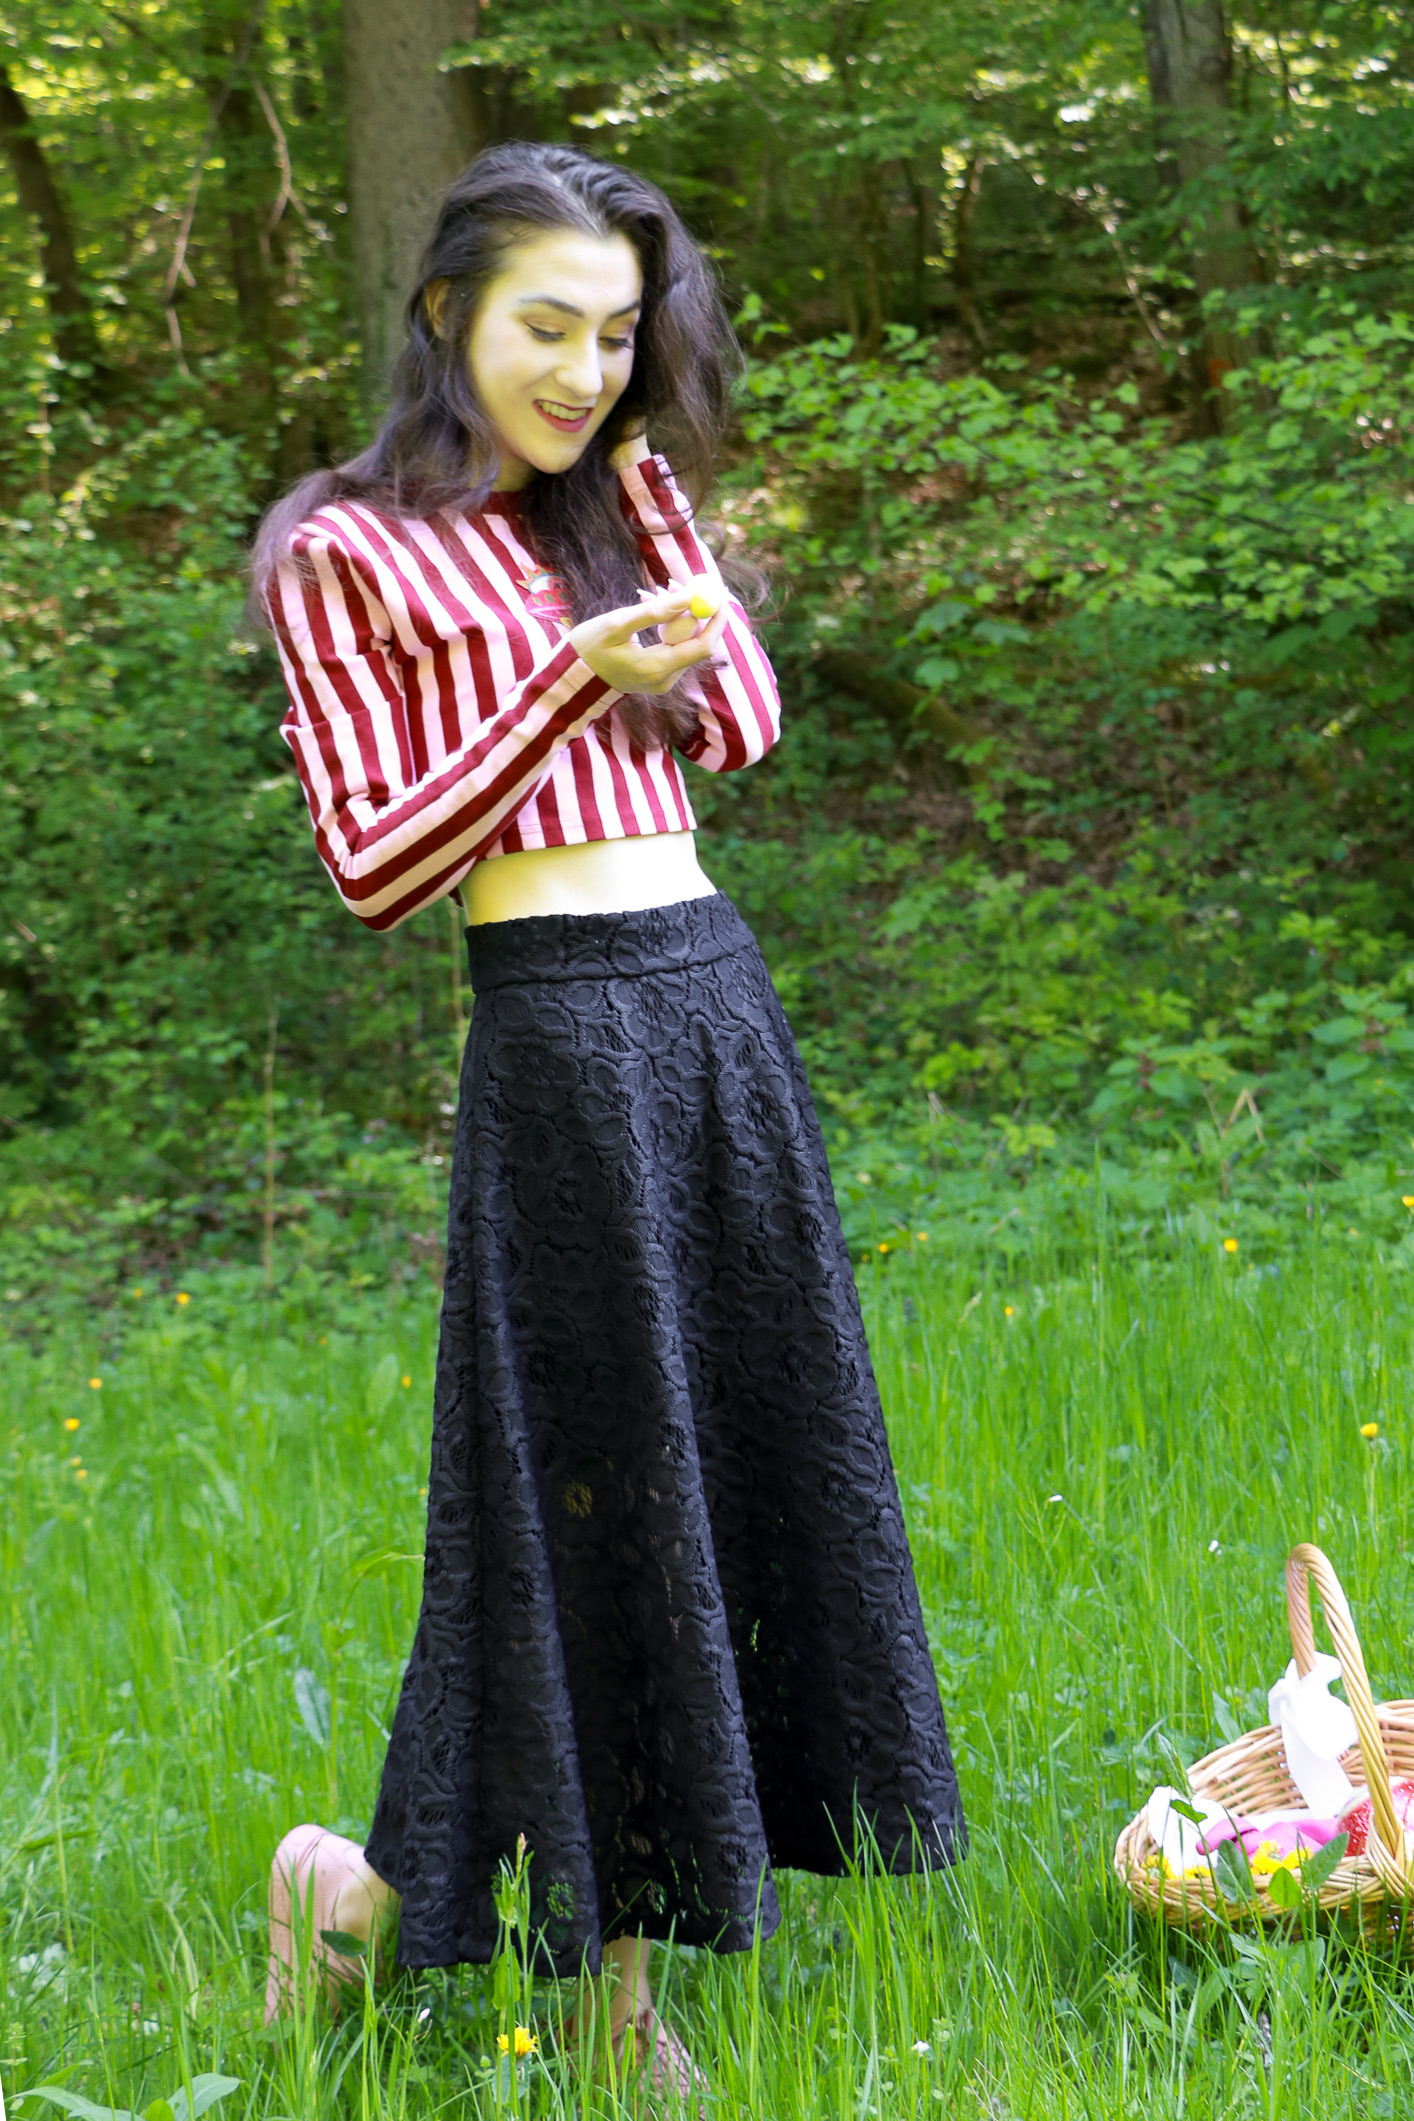 Fashion blogger Veronika Lipar of Brunette From Wall Street staring in fashion story about Chocolate Easter Egg Hunt wearing pink and red stripped cropped top, black lacy midi skirt and pale pink sneakers